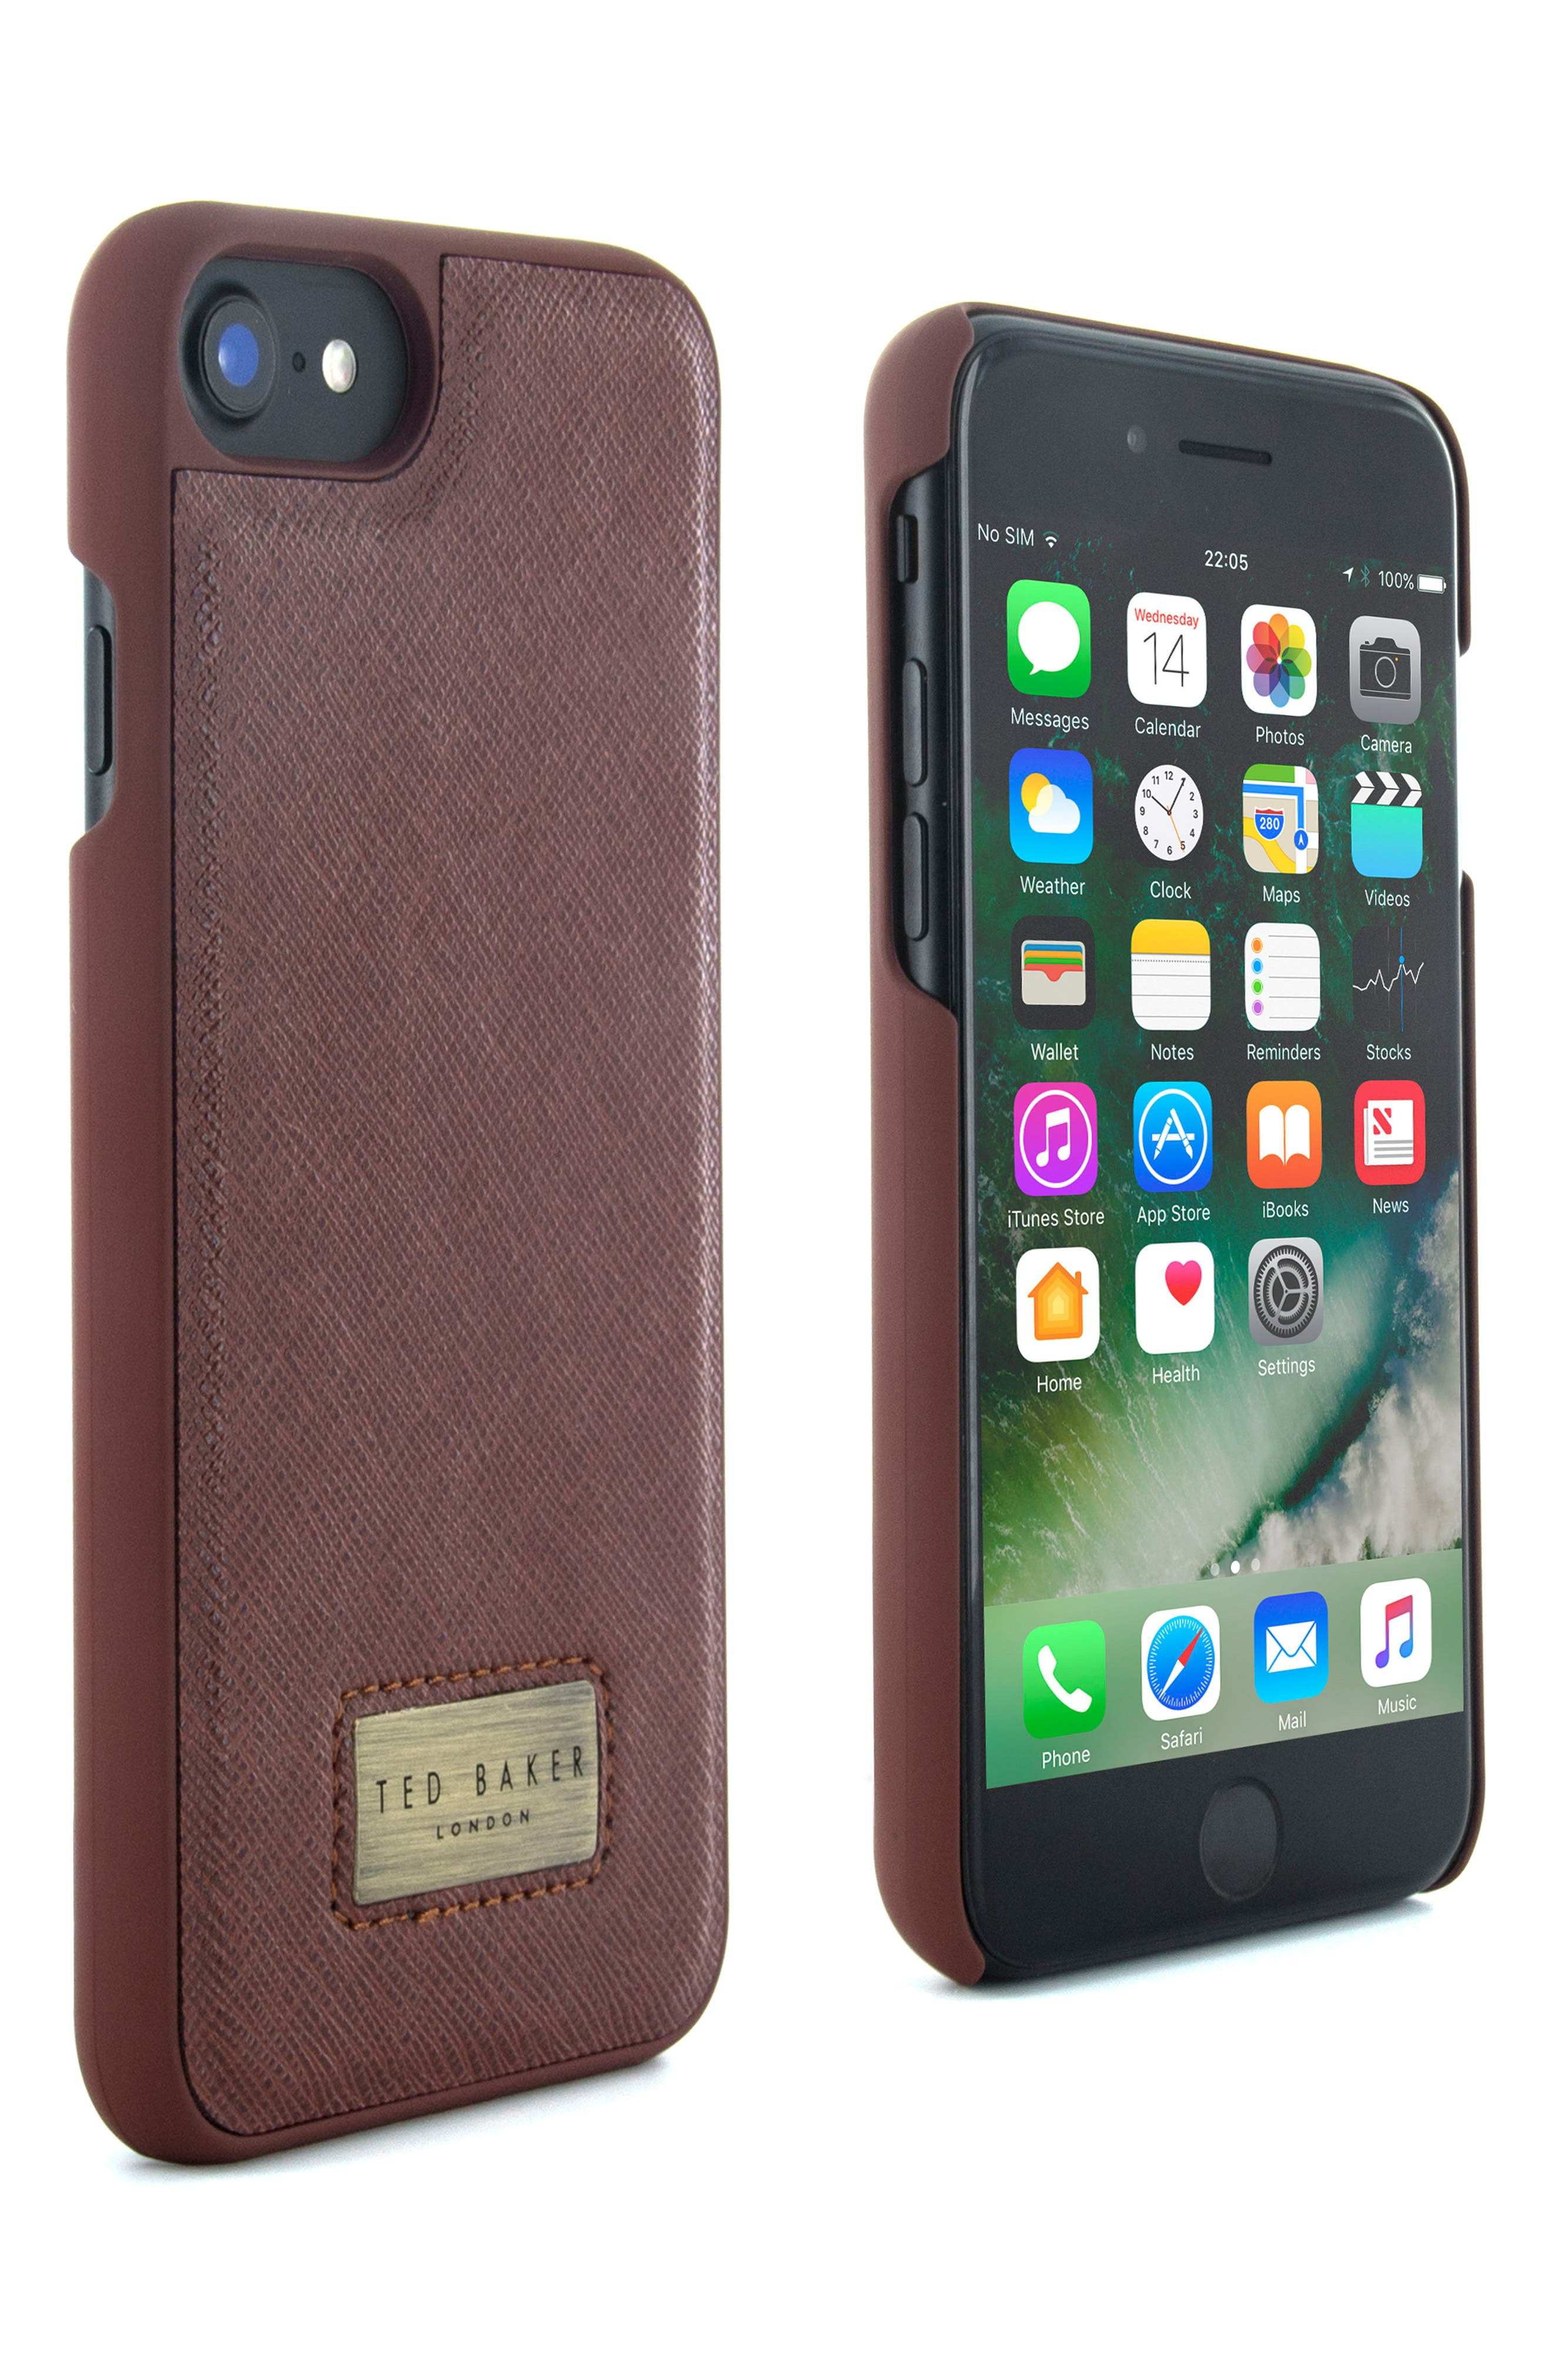 Haliday iPhone 6/6s/7/8 & 6/6s/7/8 Plus Case,                             Alternate thumbnail 3, color,                             240